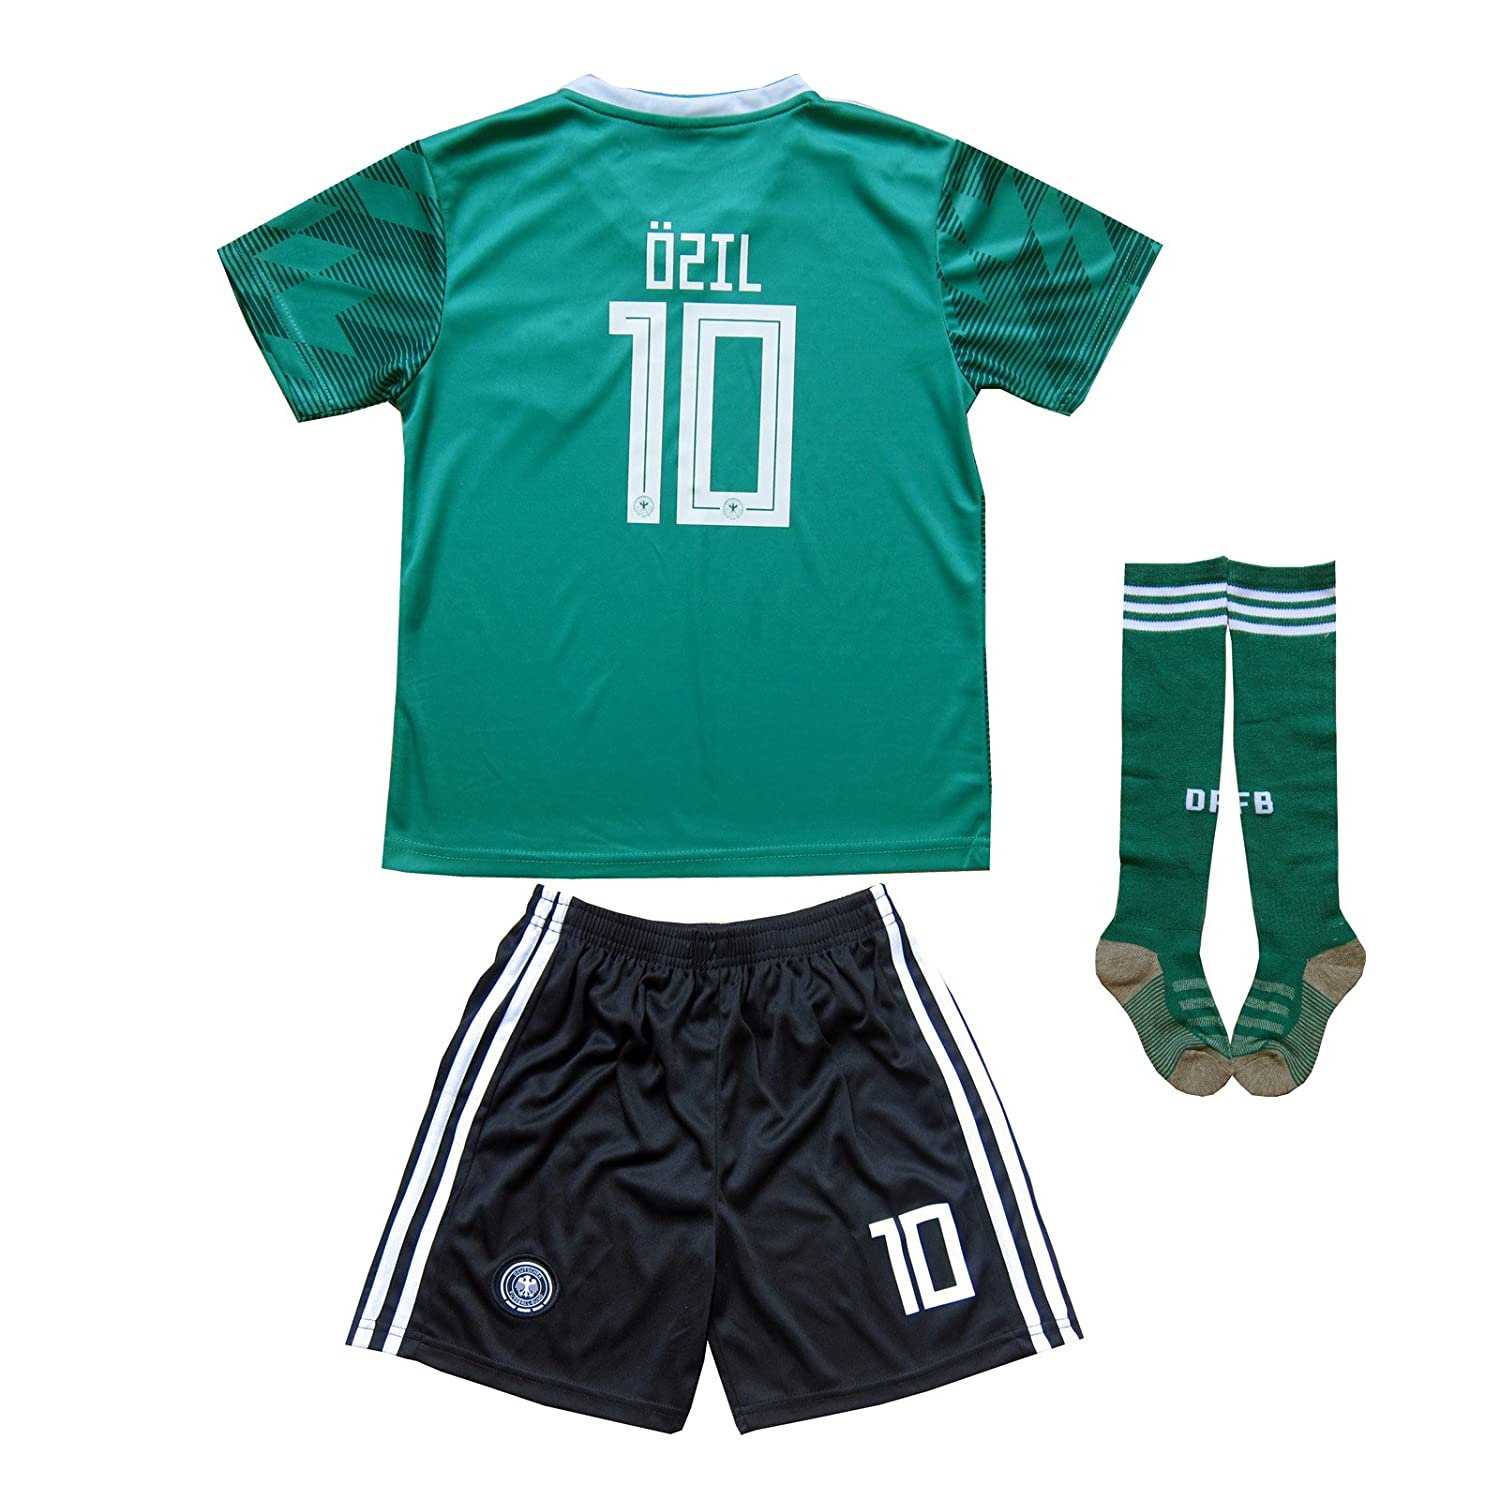 Kid Box 2018ドイツMesut Ozil # 10 Home Away Soccer Kids Jersey & Short Socks Setユースサイズ B07BVQRG9M 13-14 YEARS|Away Away 13-14 YEARS